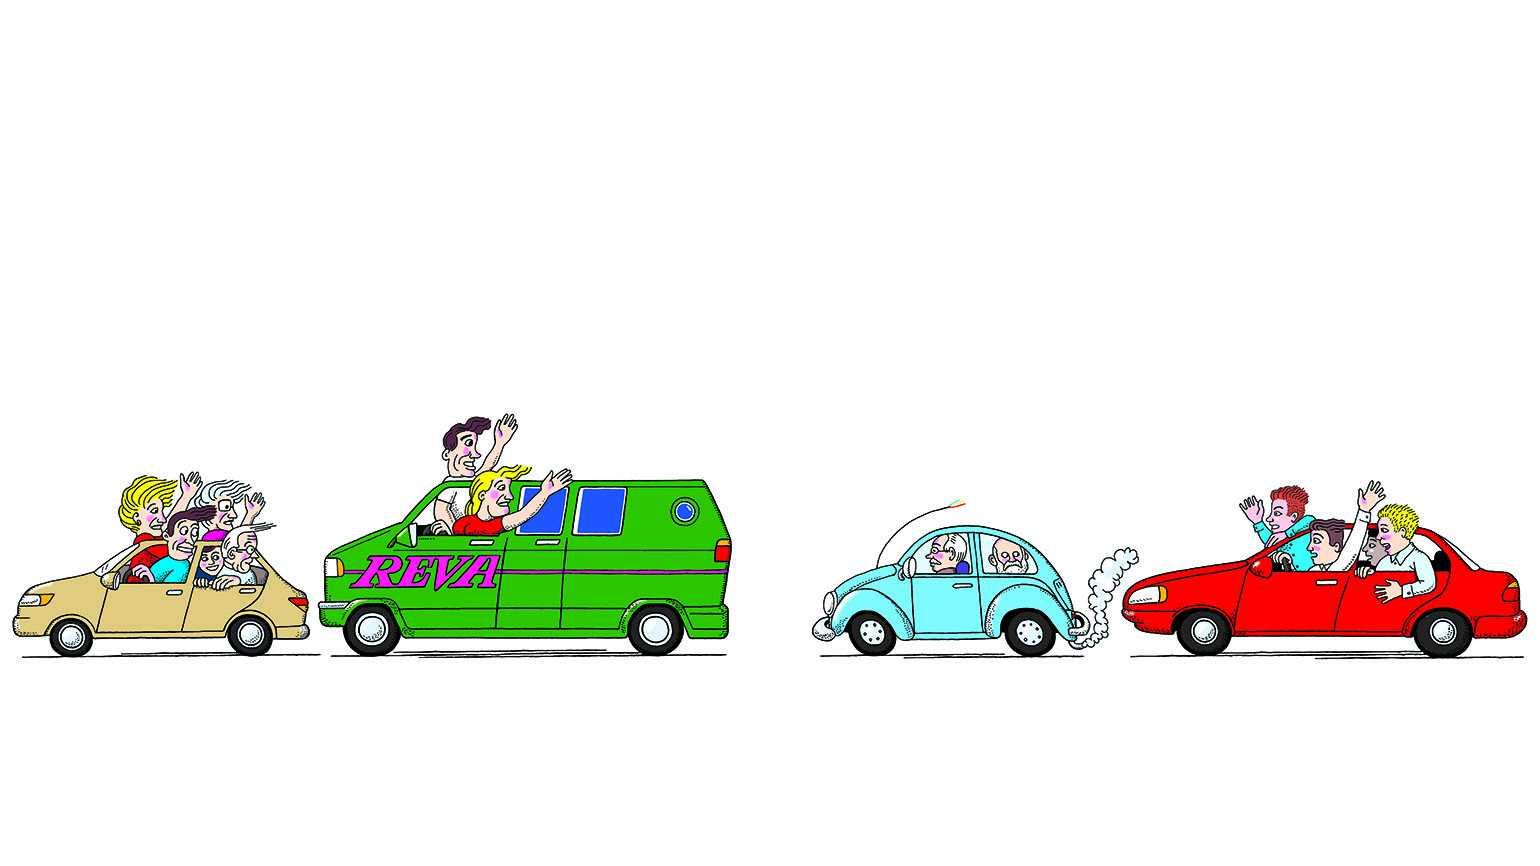 Illustration of four colorful cars